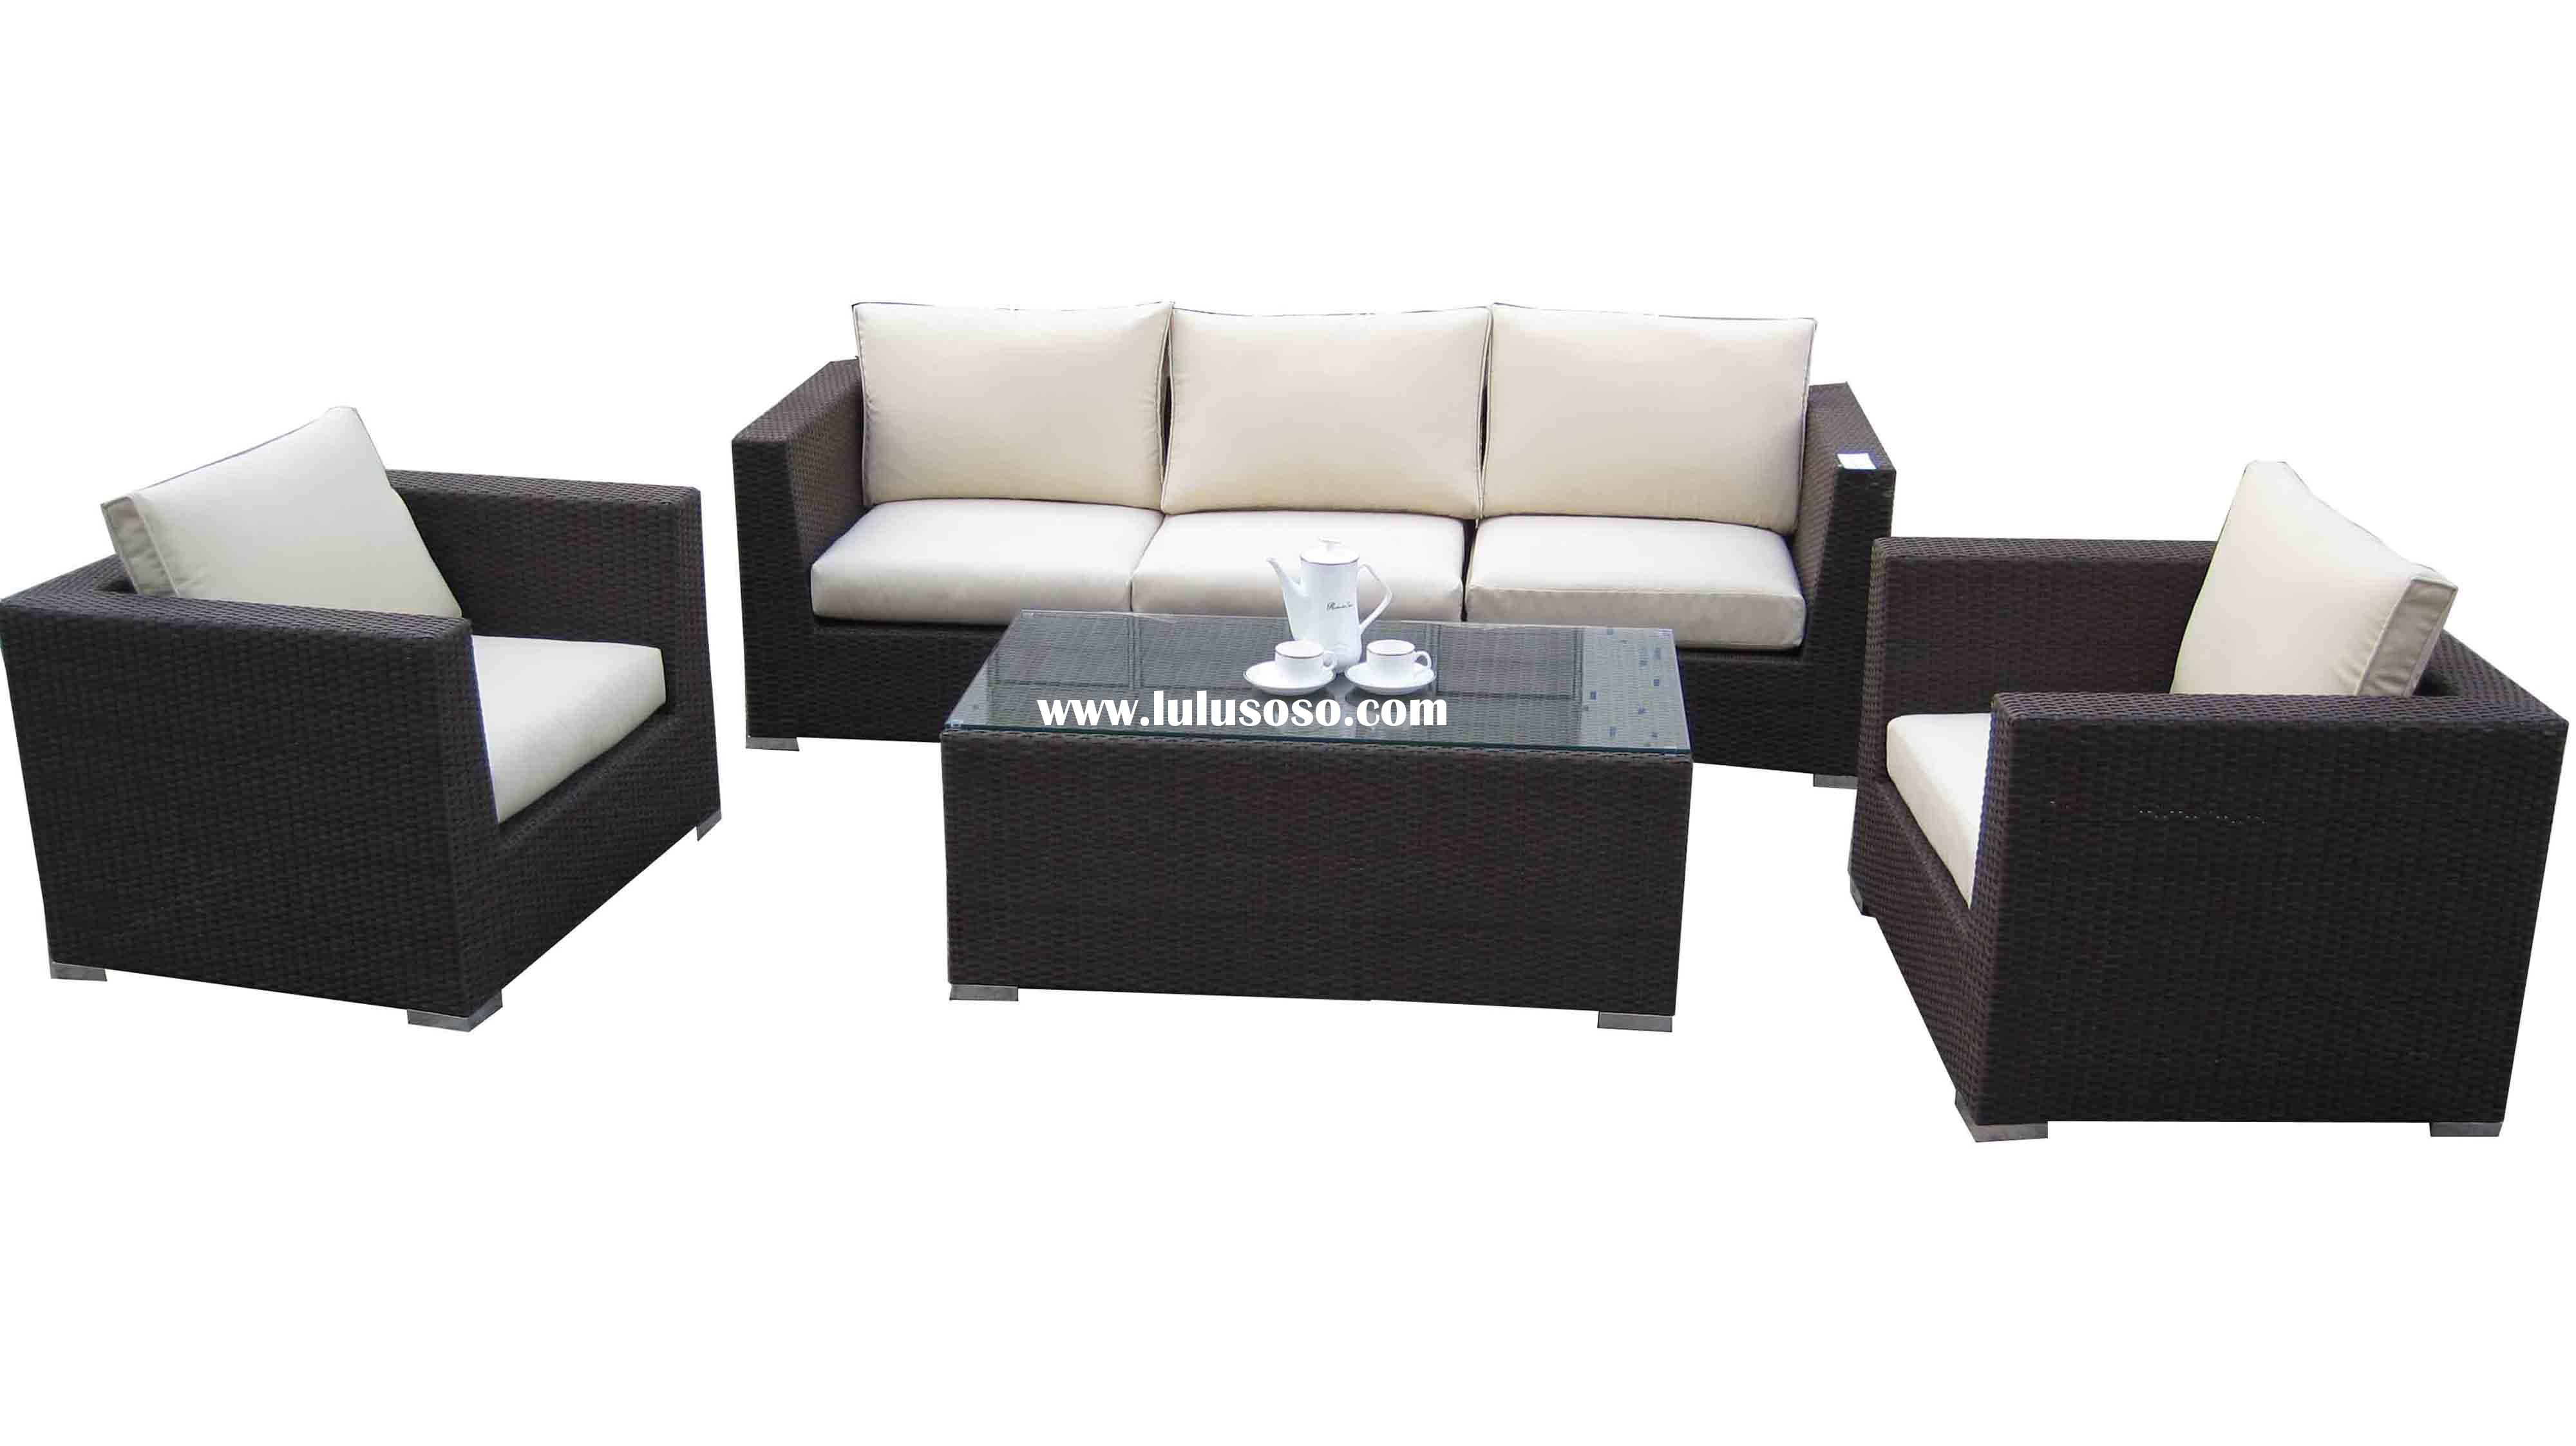 2012 modern sofa set outdoor furniture and leisure outdoor